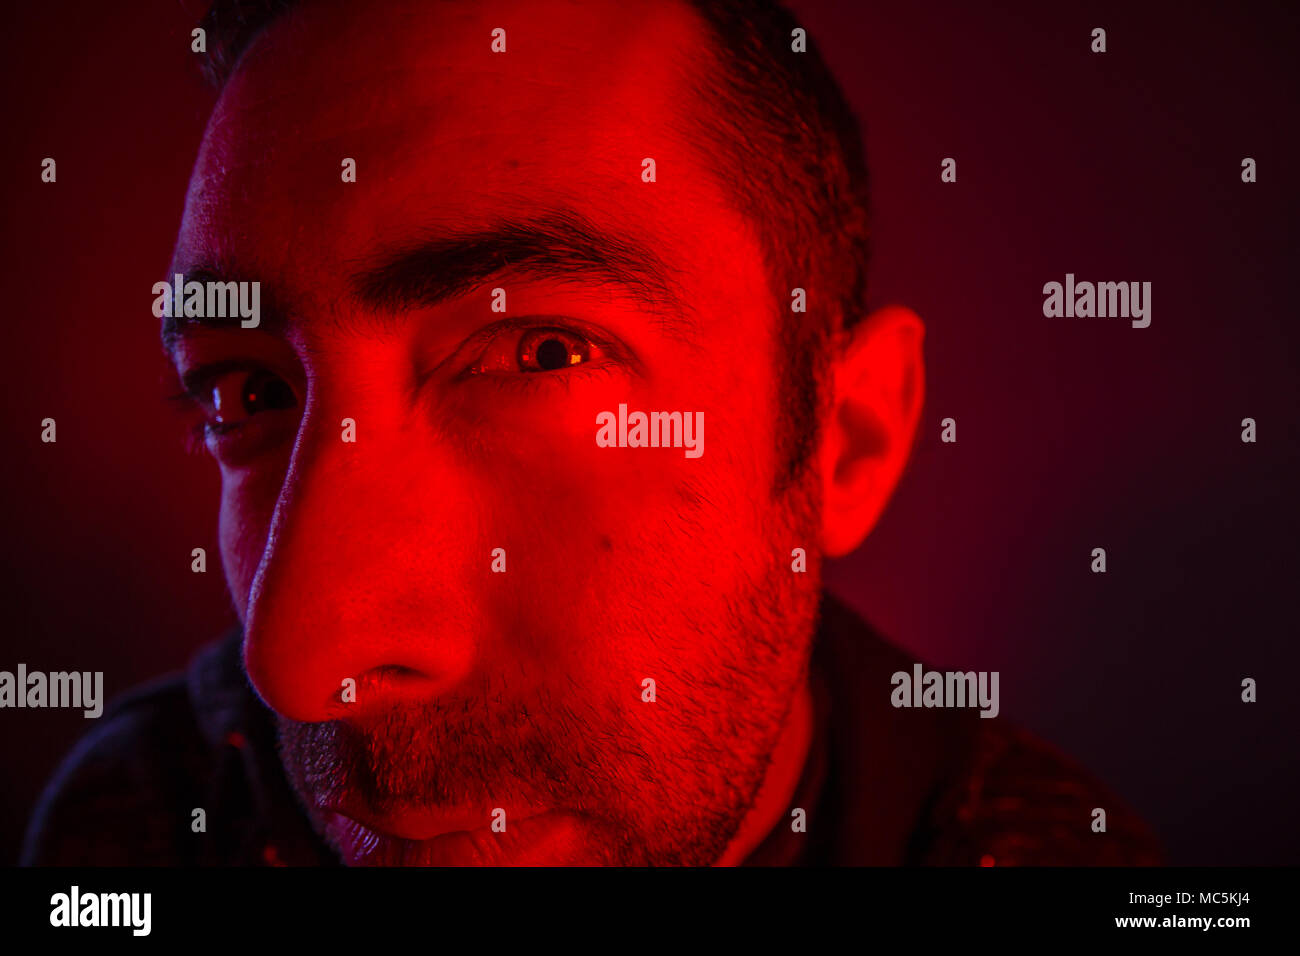 Man with suspicious facial expression. Close up portrait of doubt or skeptical young man. Also look like he is peeping. - Stock Image